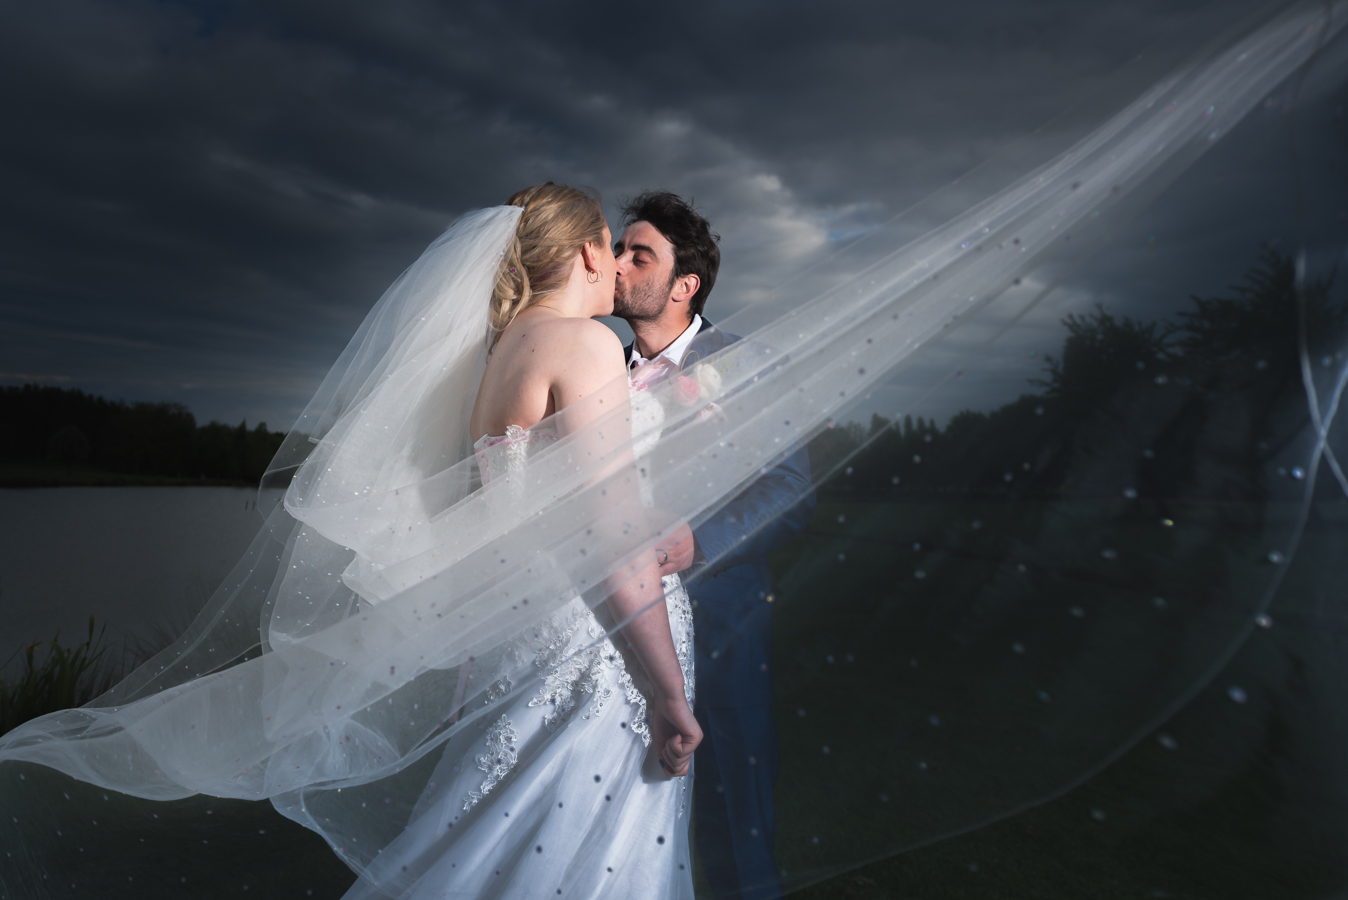 Epic wedding photography at windmill village hotel by the best wedding photographer west midlands